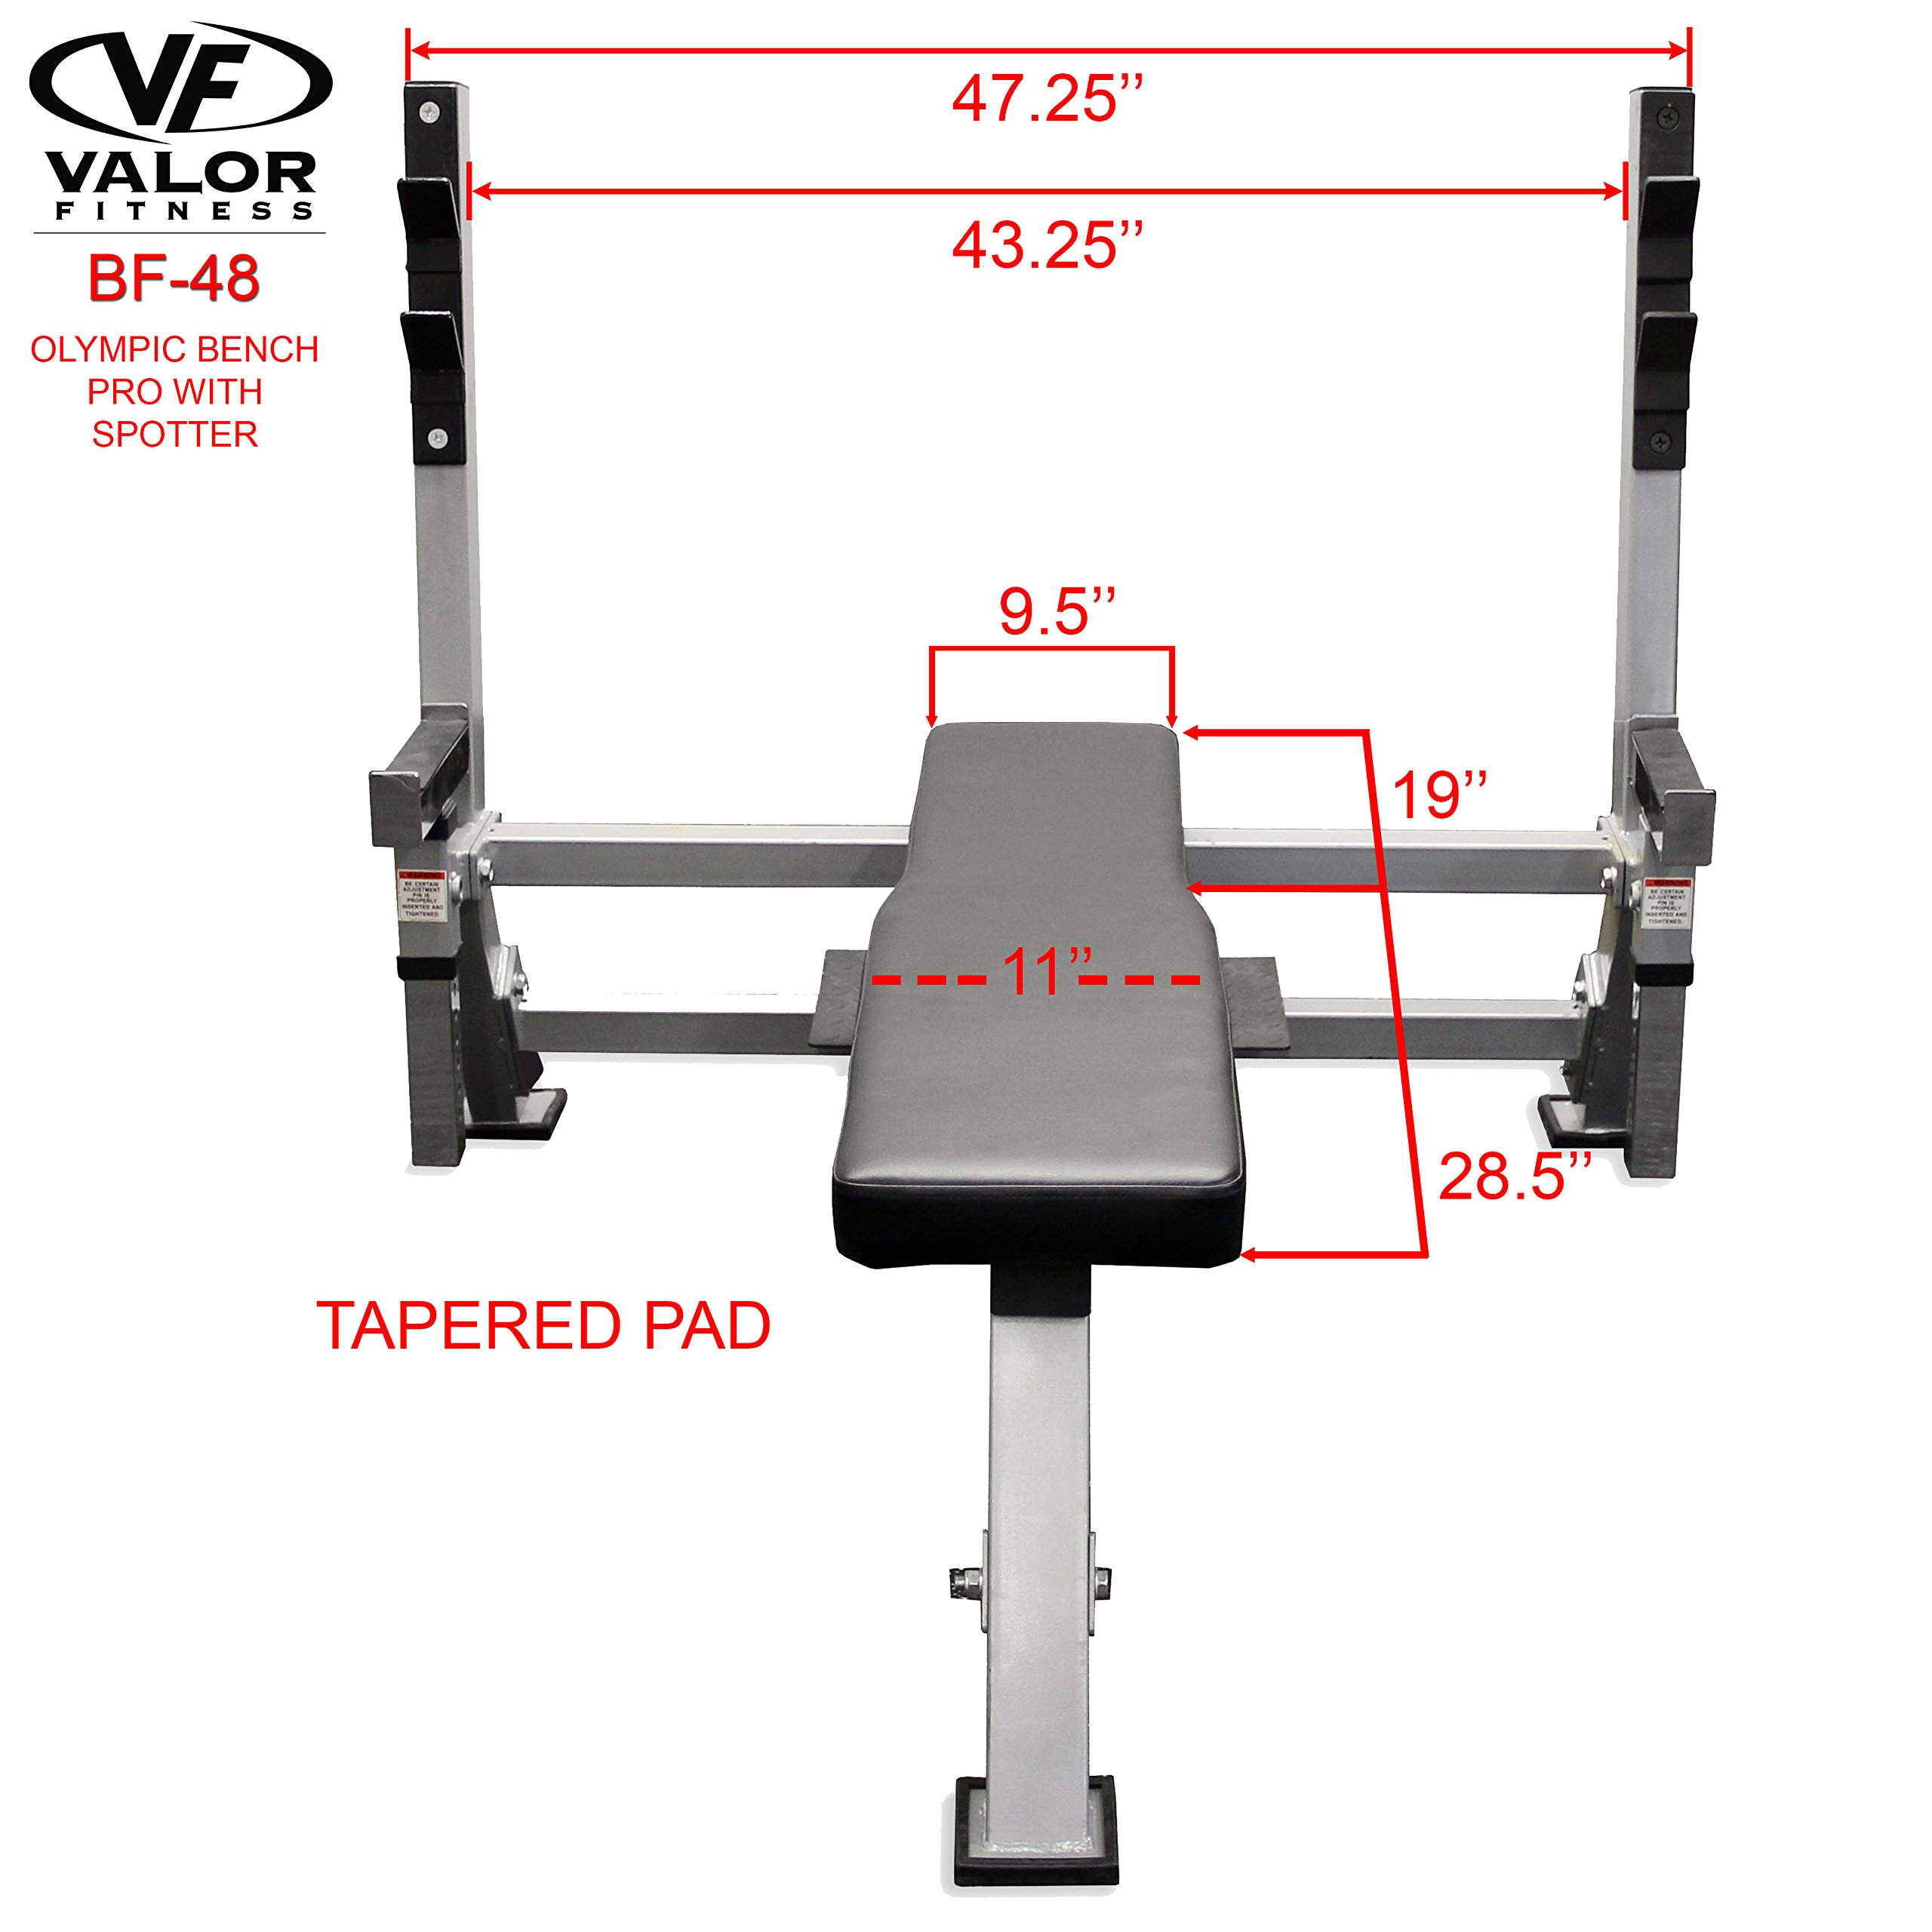 Valor Fitness BF-48 Olympic Bench Pro with Spotter by Valor Fitness (Image #8)